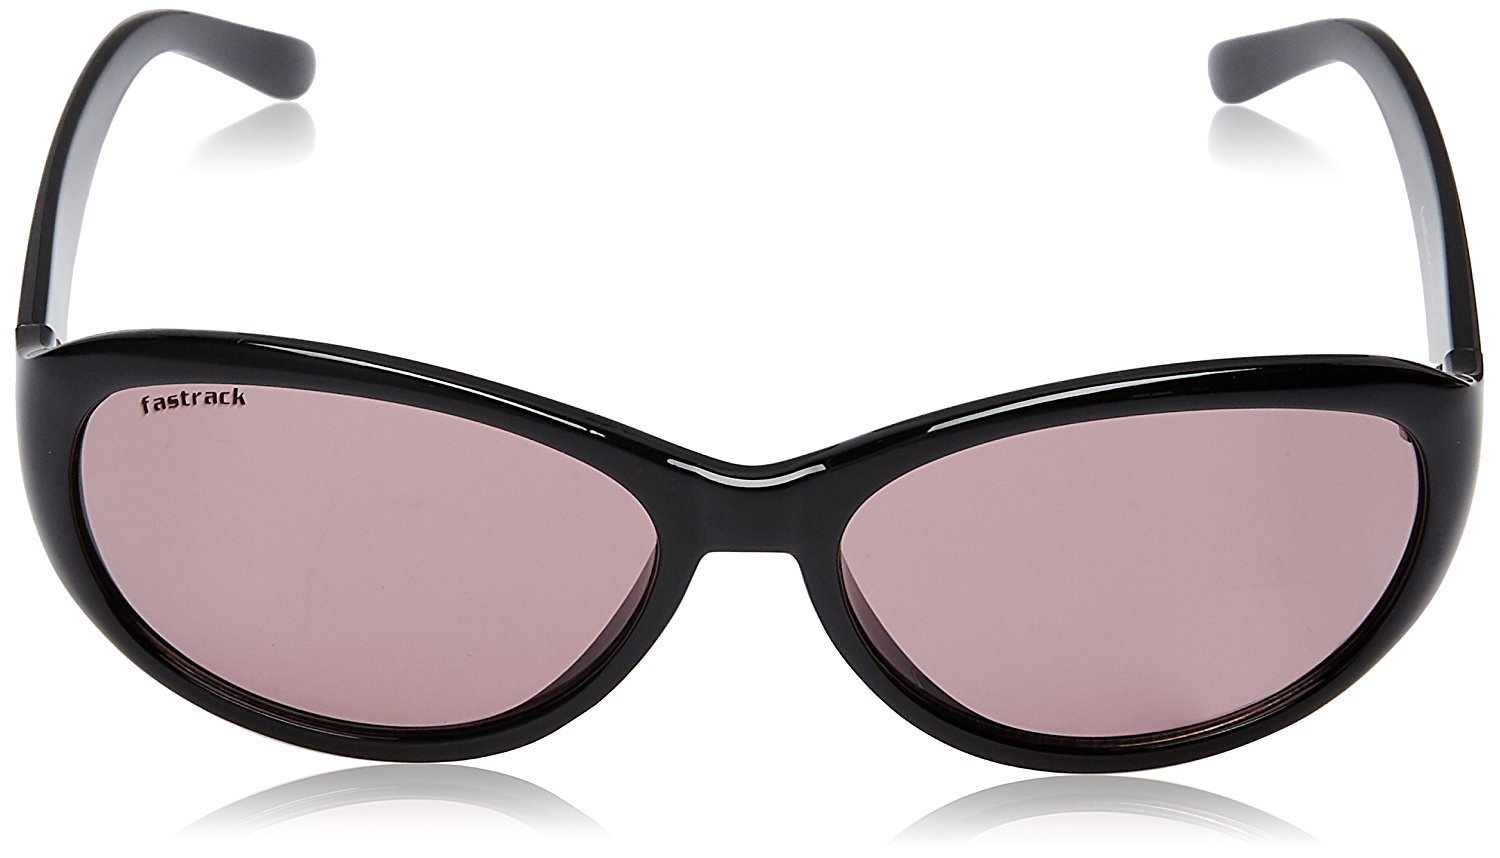 Fastrack Oval Unisex Sunglasses - (P188PK2F|Pink Color)